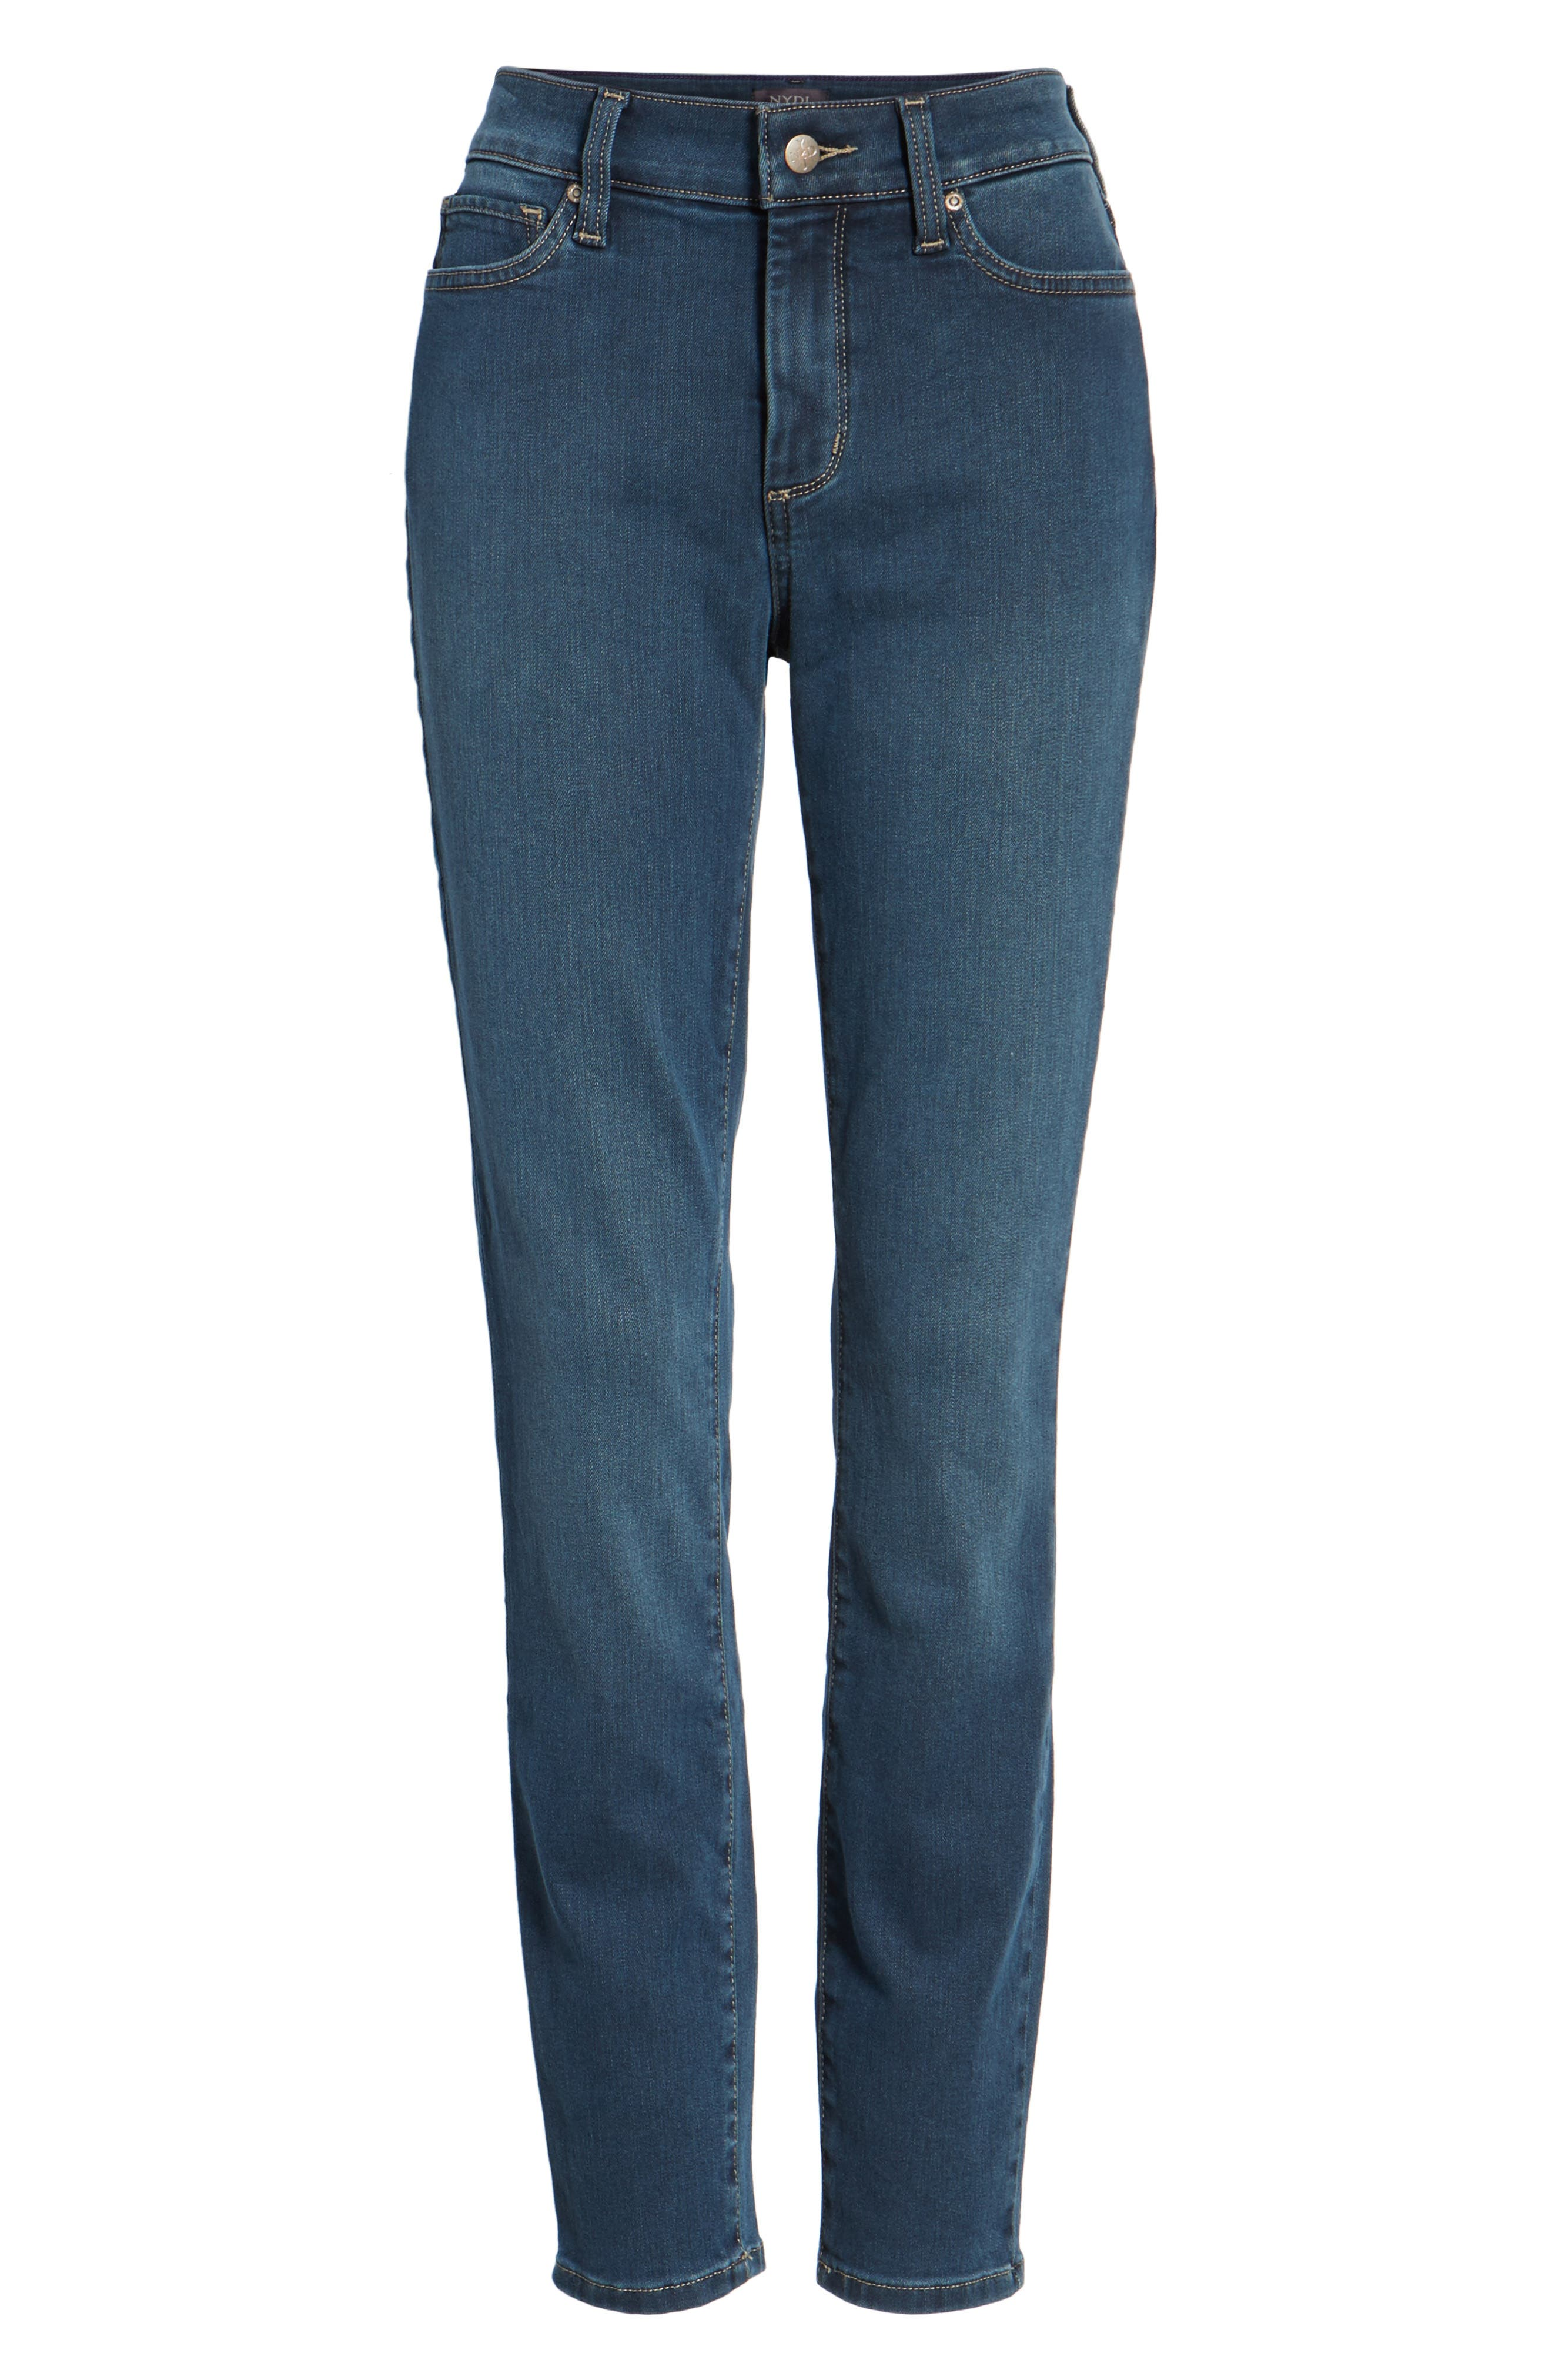 Ami Stretch Super Skinny Jeans,                             Alternate thumbnail 6, color,                             404